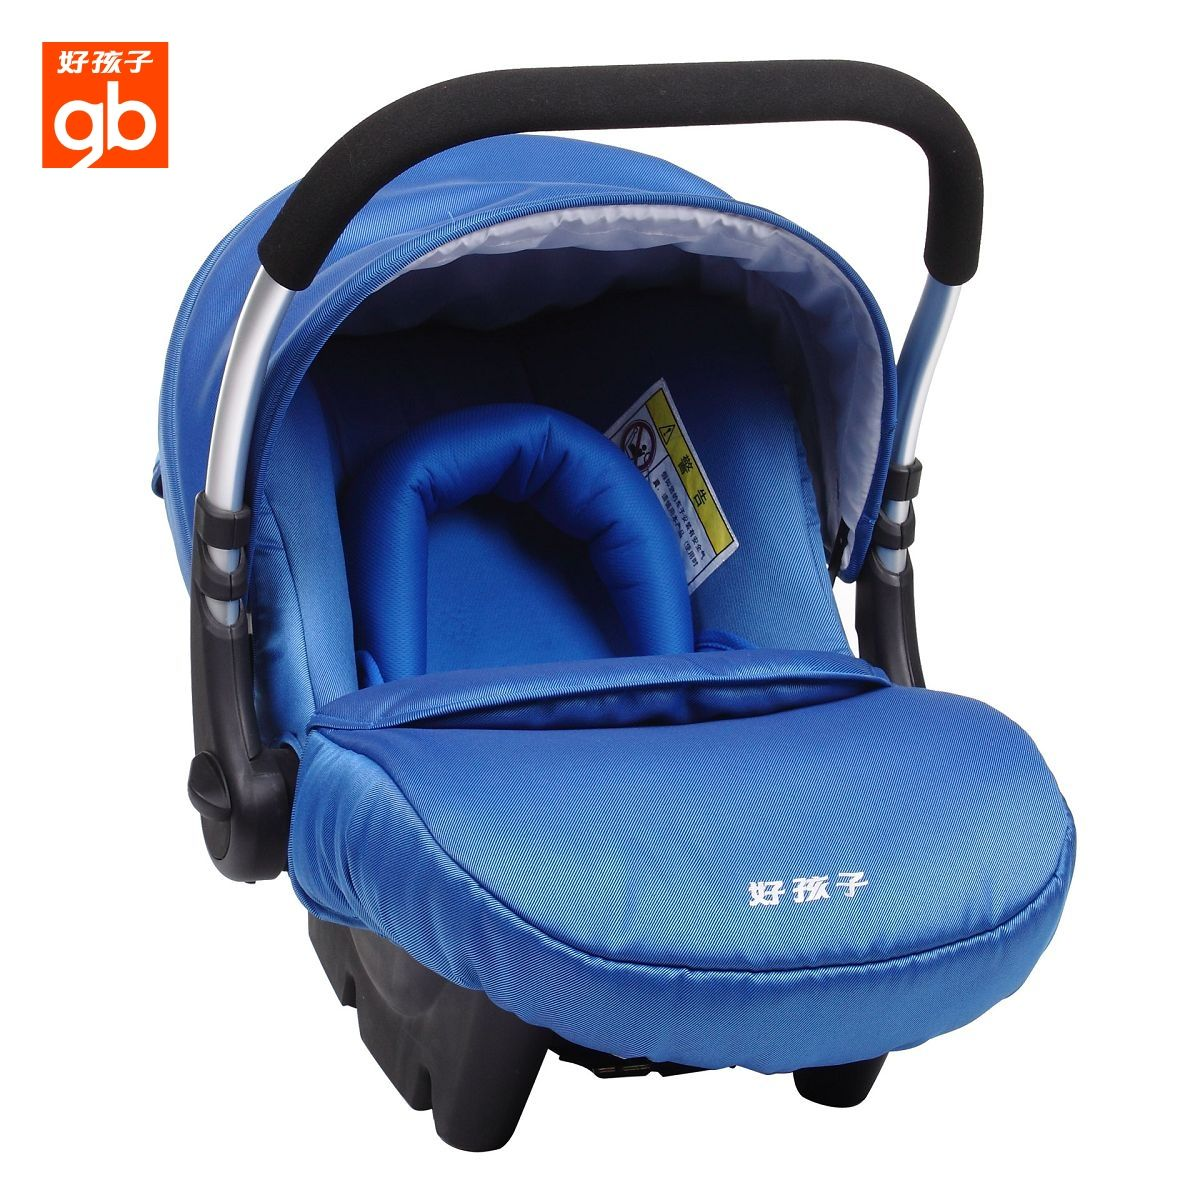 Goodbaby Boy European Standard Basket Style Baby Car Seat 0 15 Months CS700 In Child Safety Seats From Mother Kids On Aliexpress